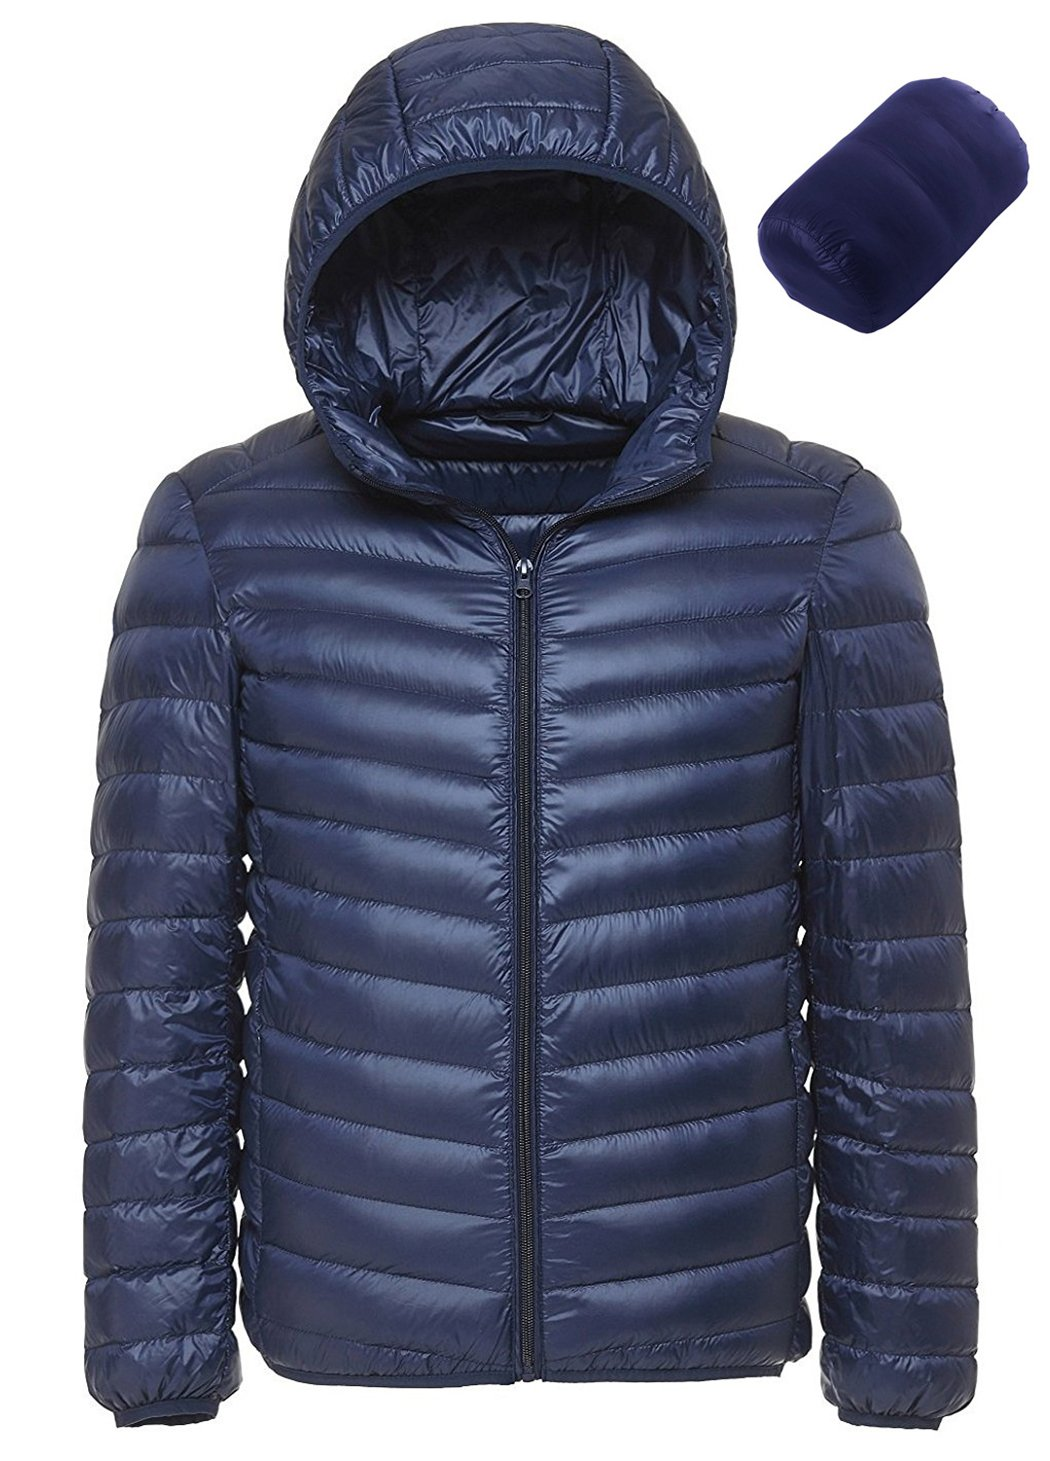 Sawadikaa Men's Winter Hooded Packable Ultra Light Pillow Down Puffer Jacket Coat Outdoor Quilted Lightweight Down Parka Navy Small by Sawadikaa